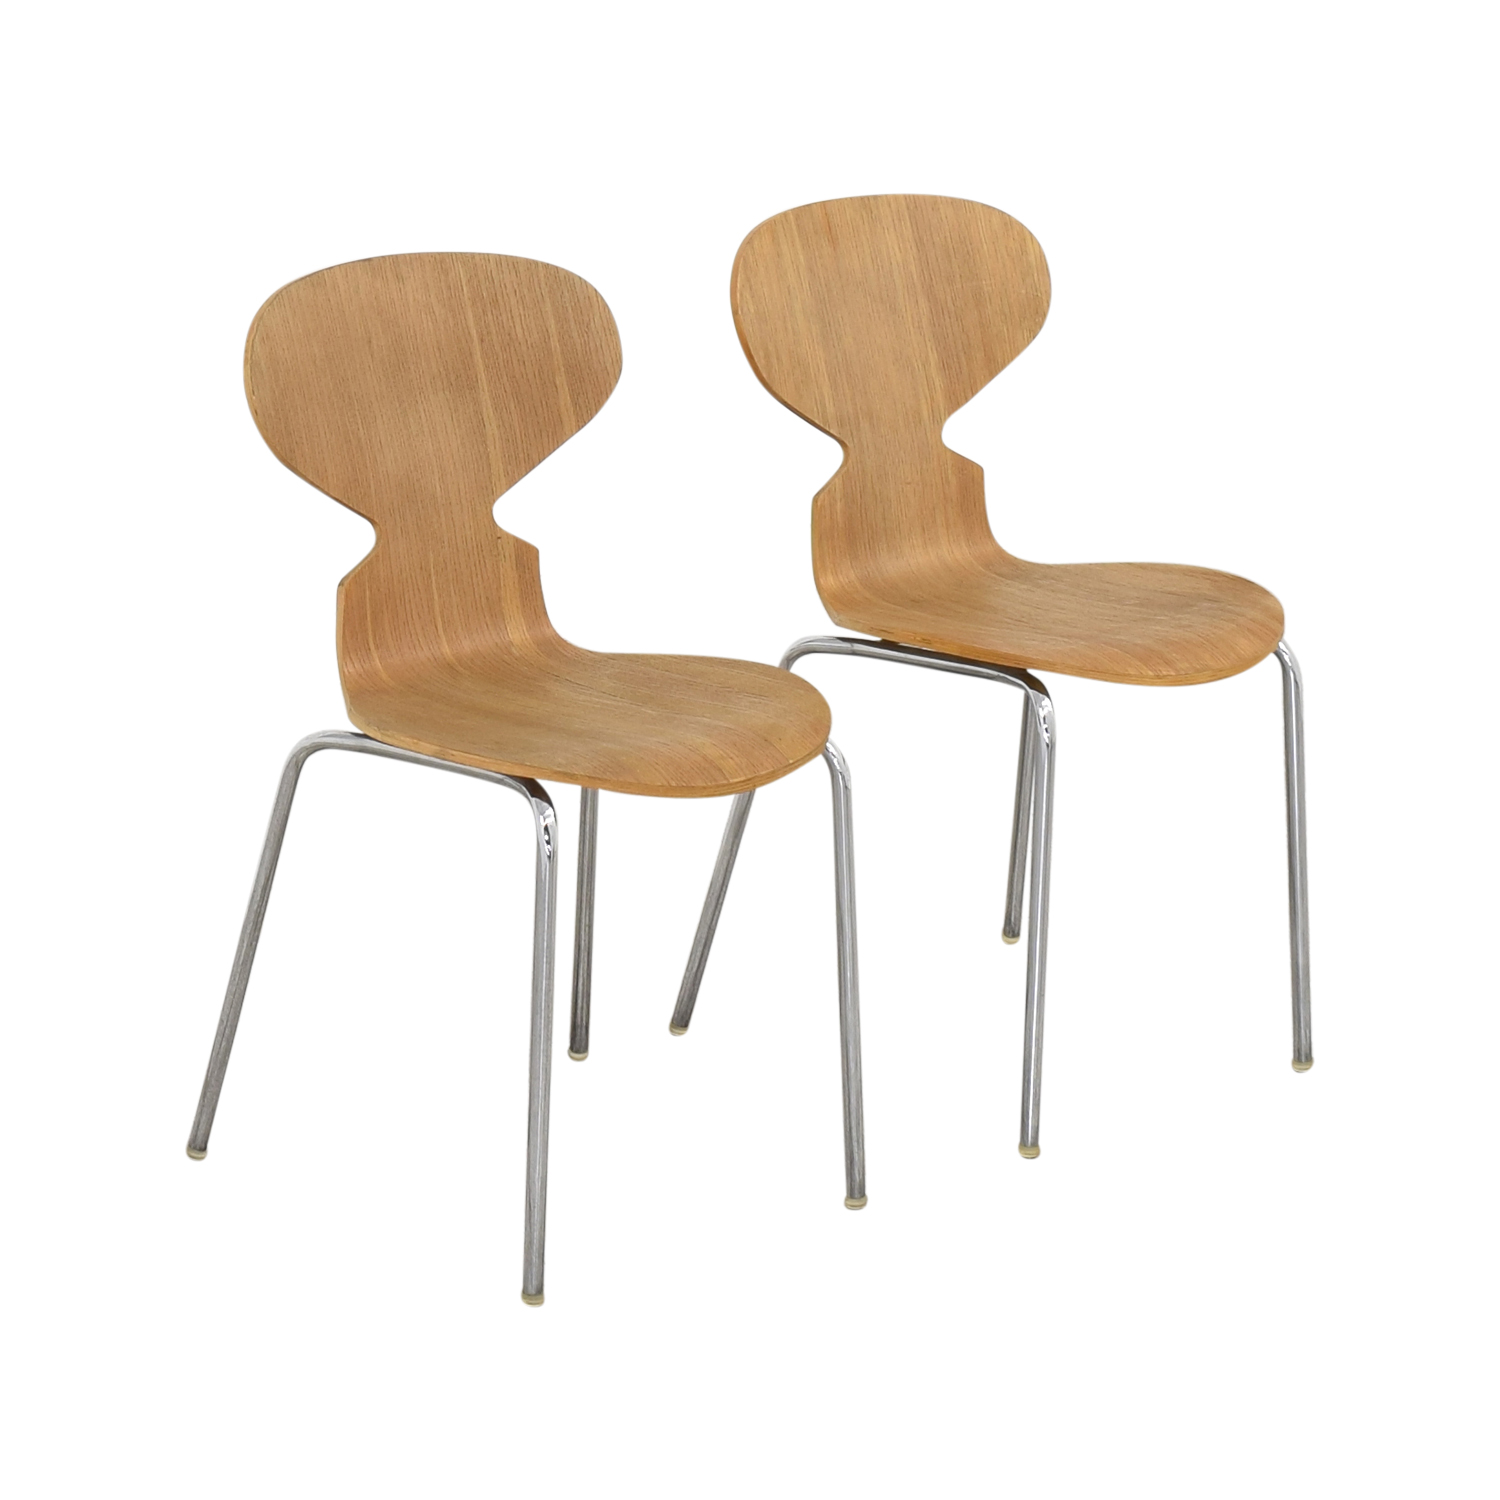 CB2 CB2 Side Chairs brown